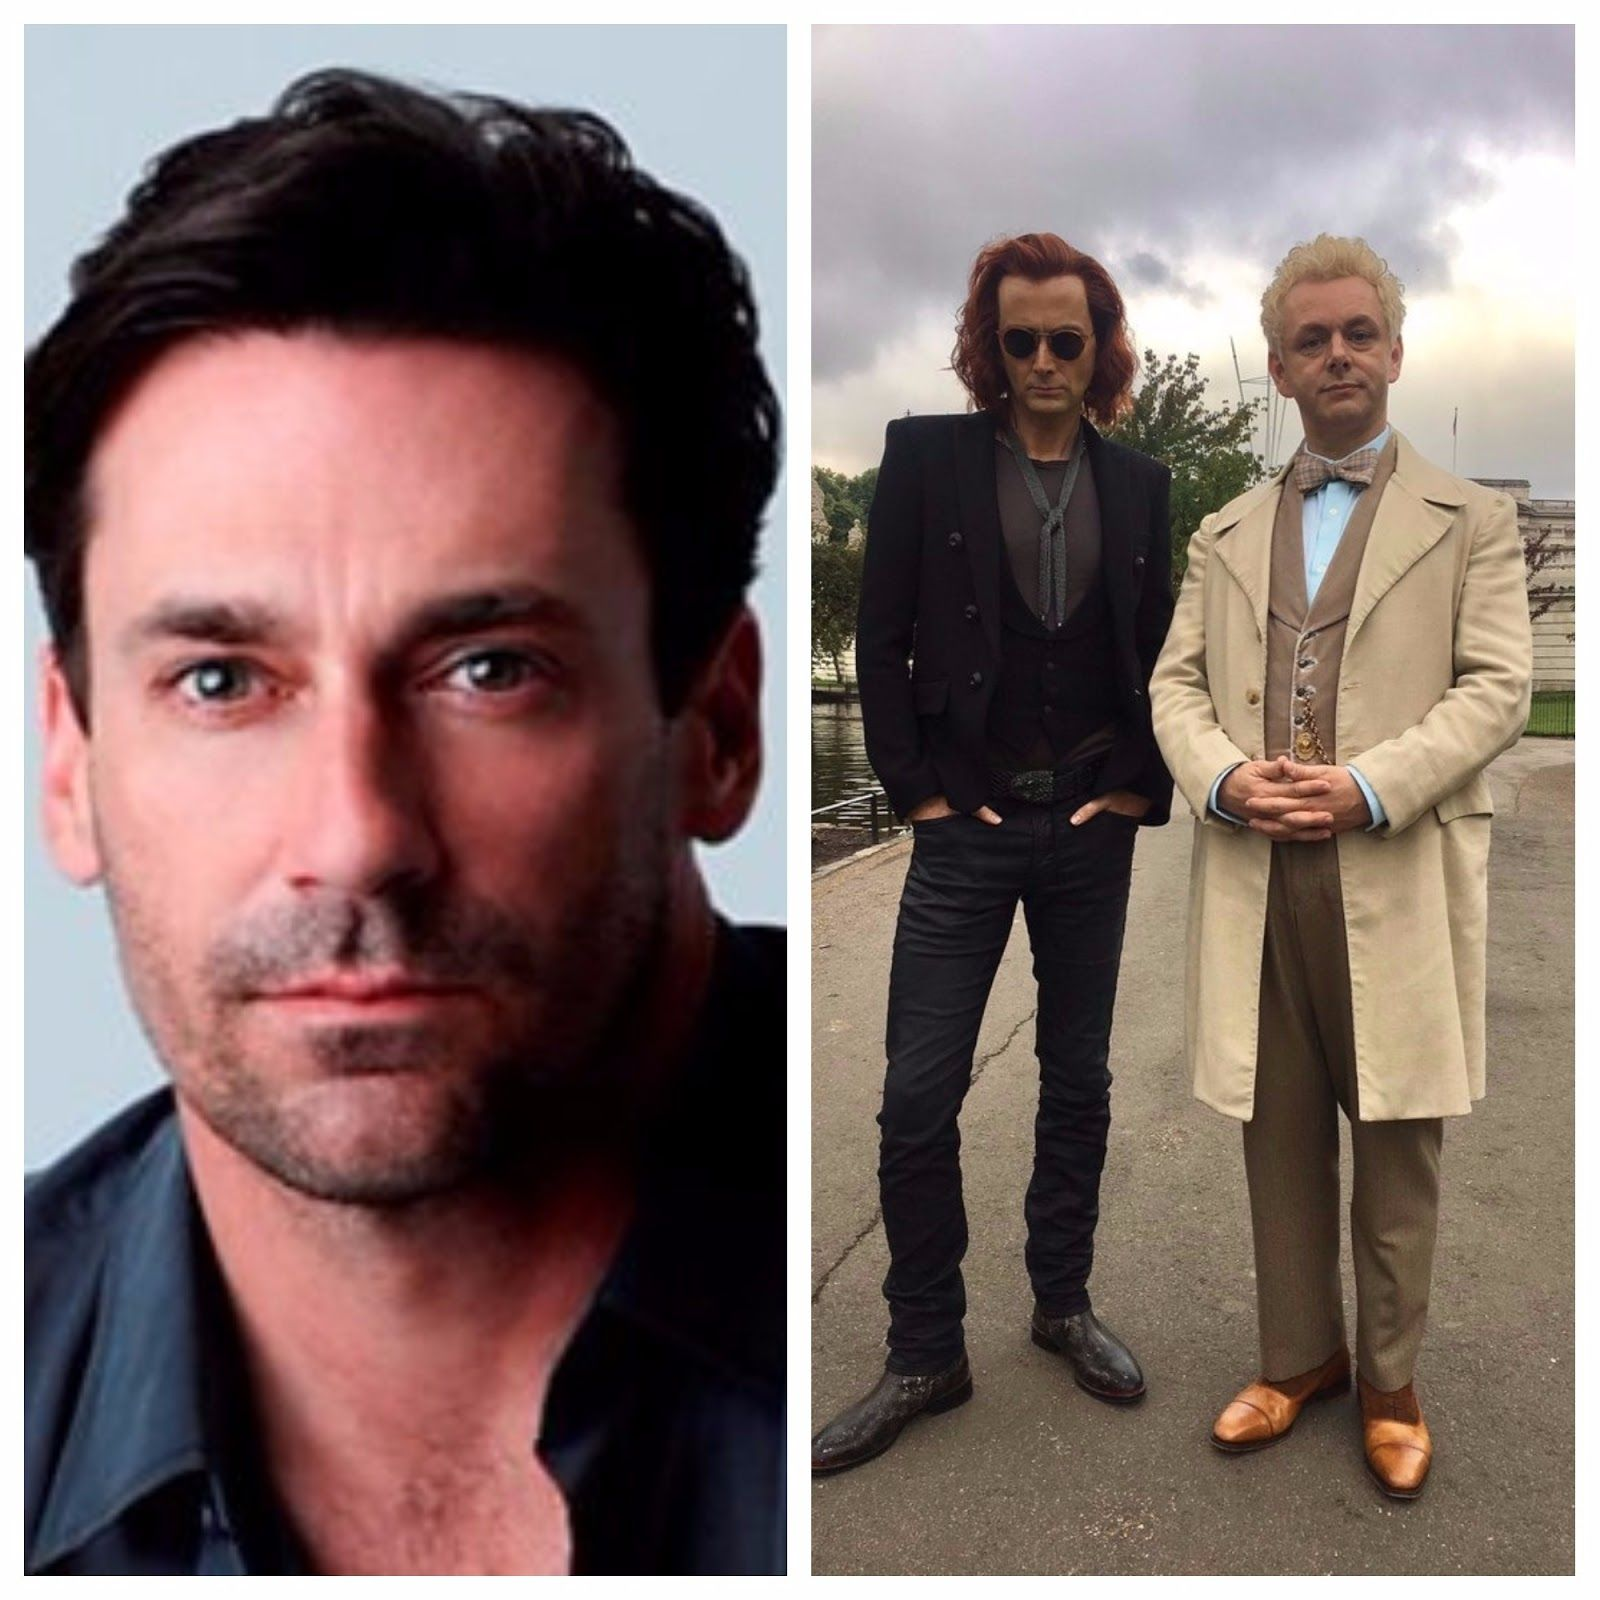 Jon Hamm Joins David Tennant And Michael Sheen For Good